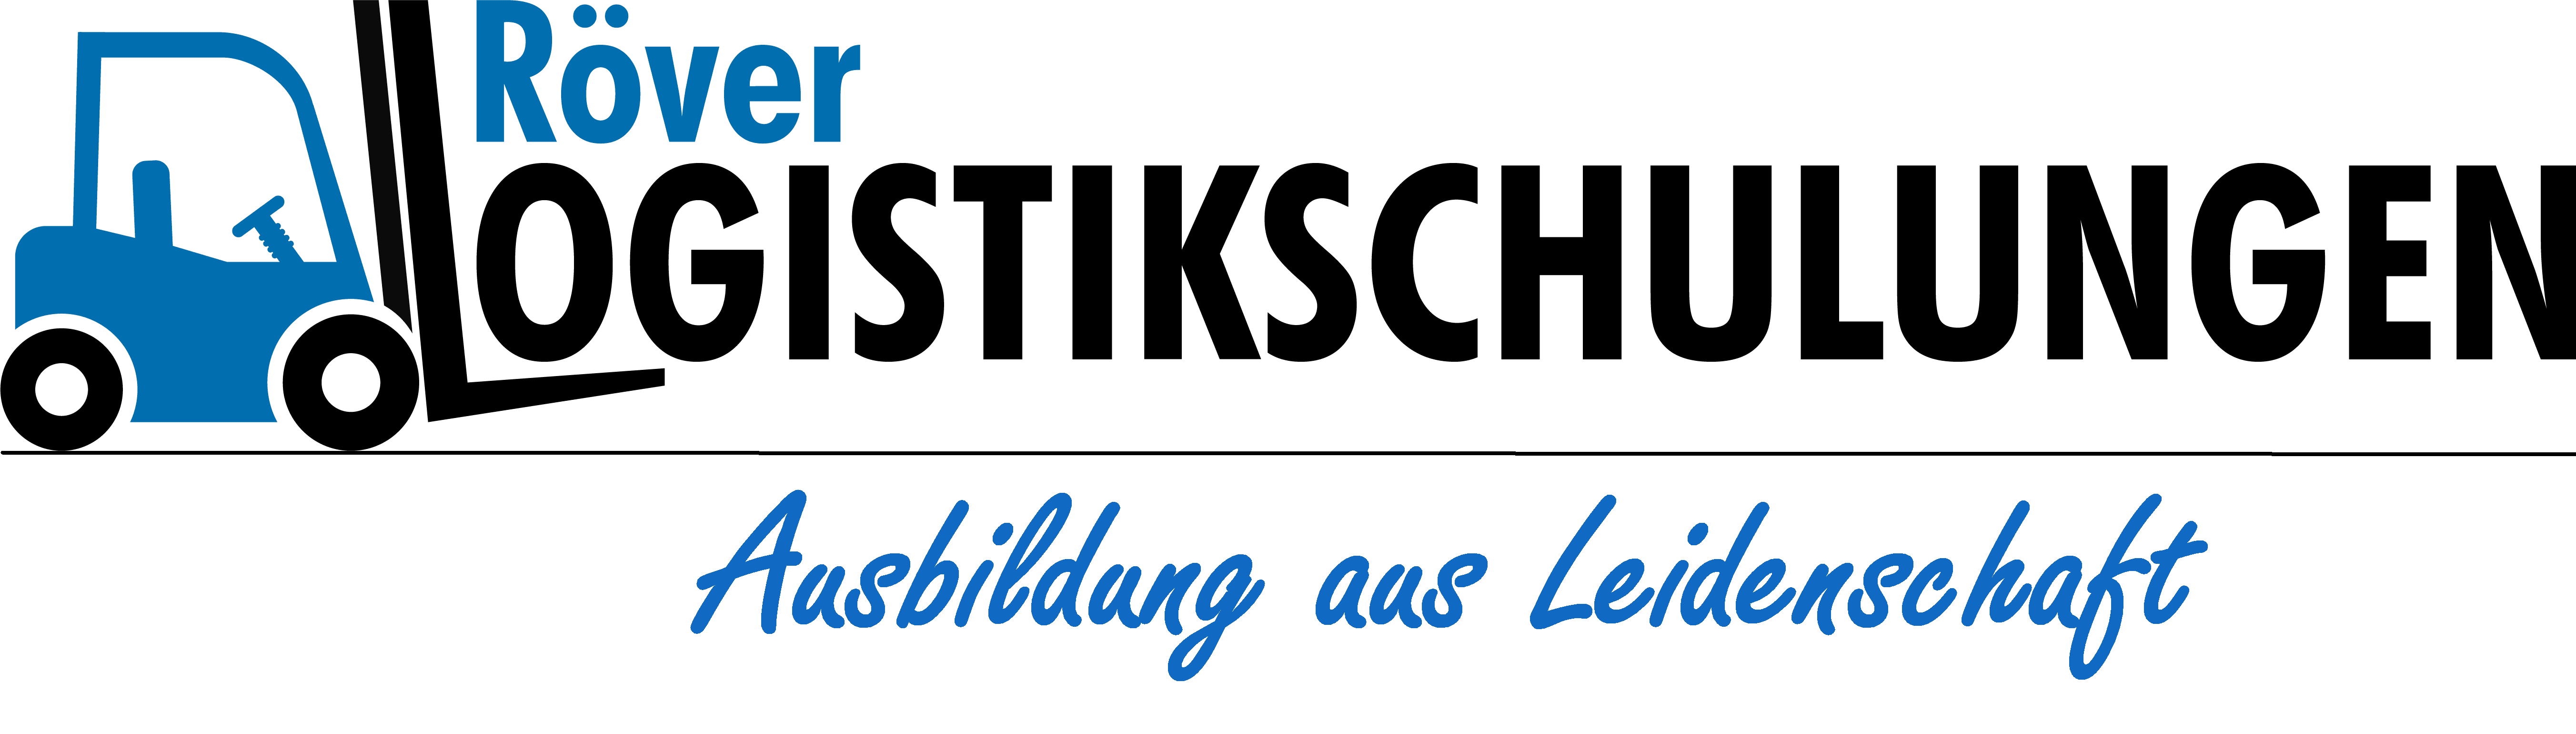 Röver Logistikschulungen